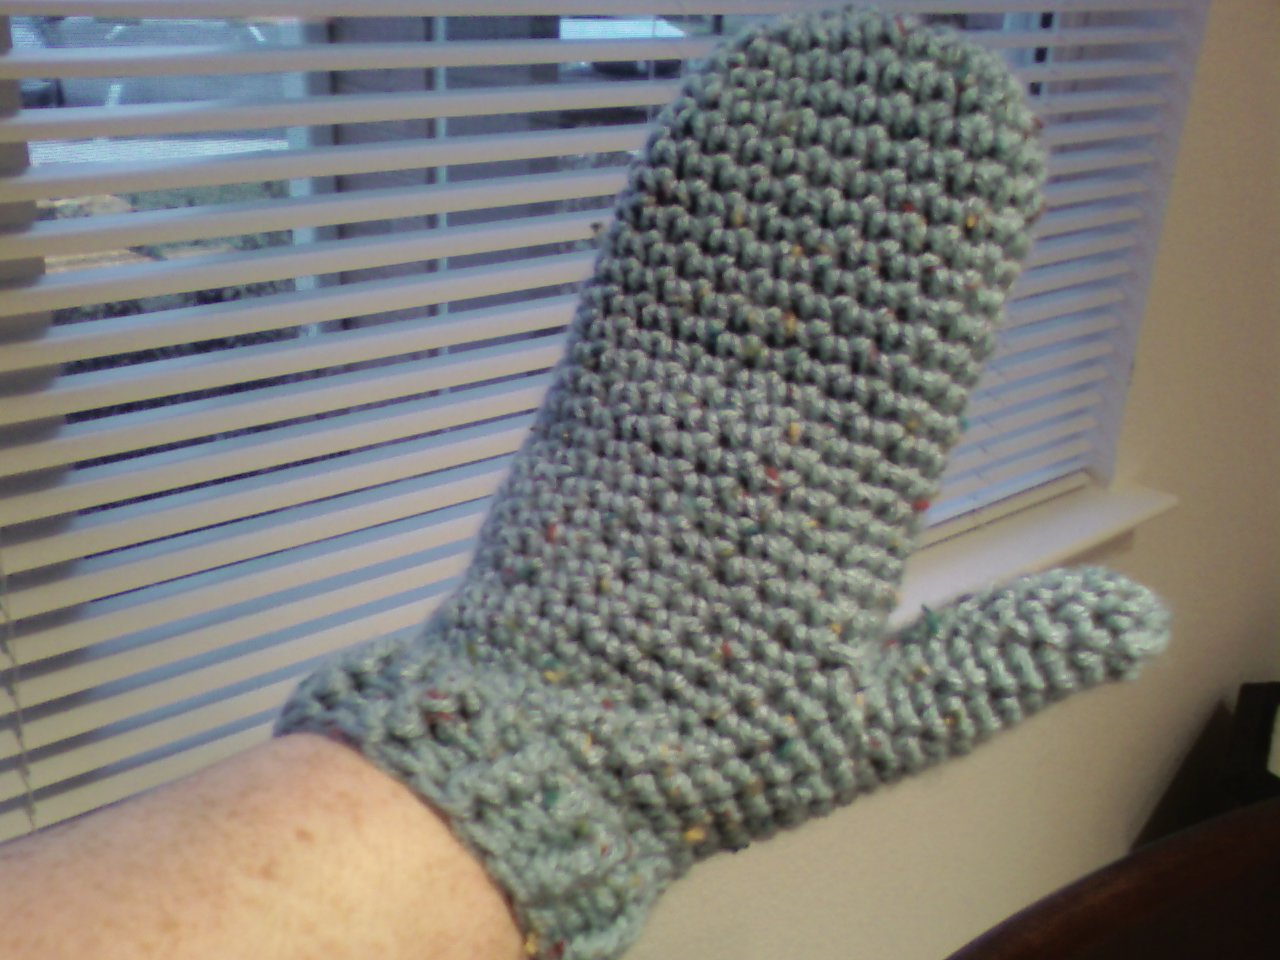 Crochet Free Patterns Mittens : Hodge Podge Mittens Pattern GretchKals Yarny Adventures